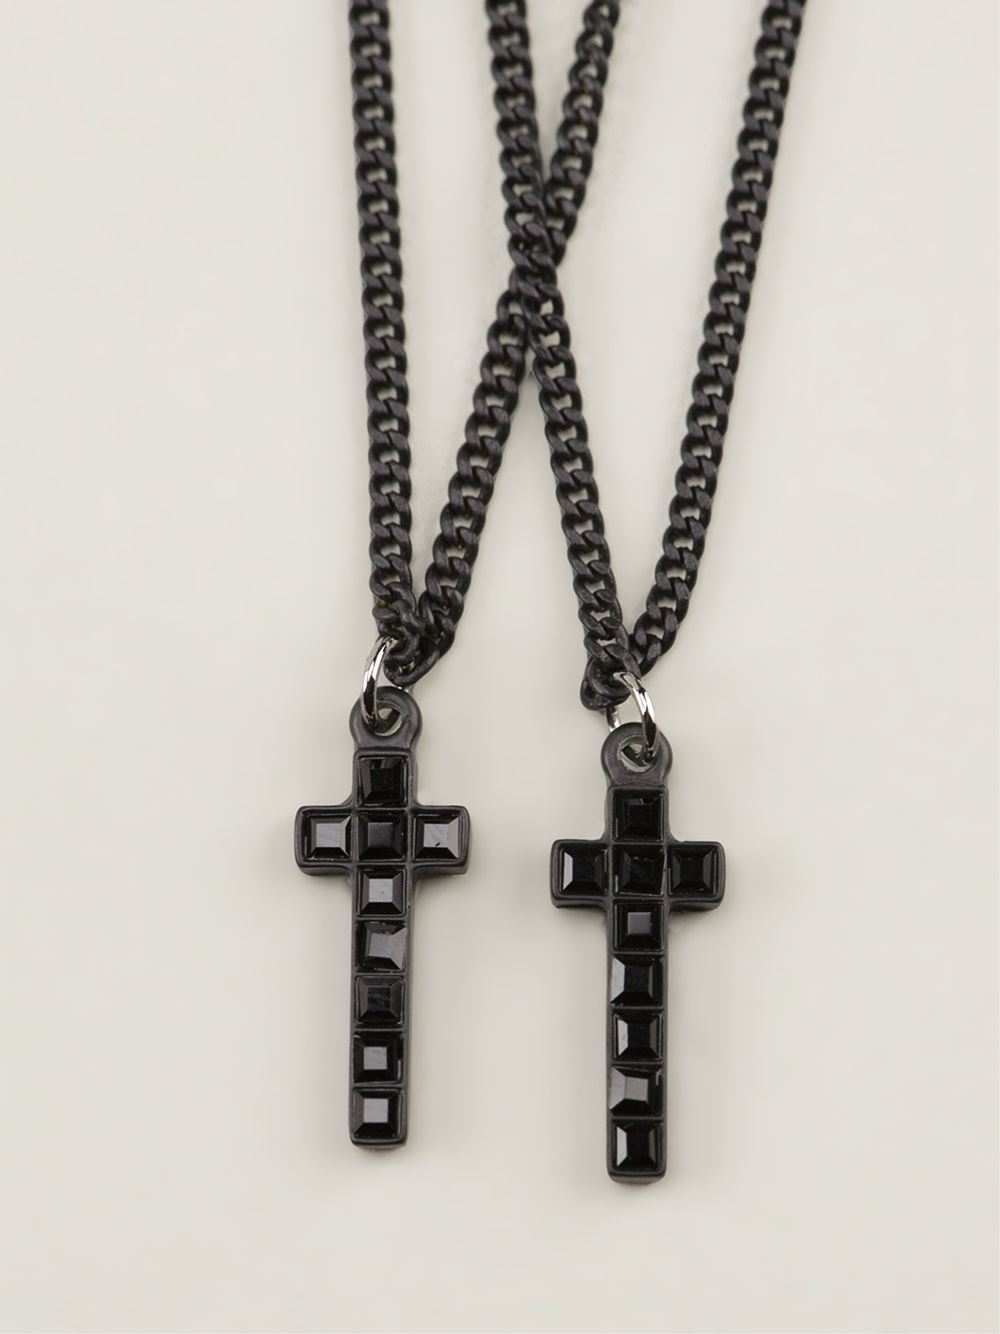 Lyst - Dsquared² Double Cross Necklace in Black for Men